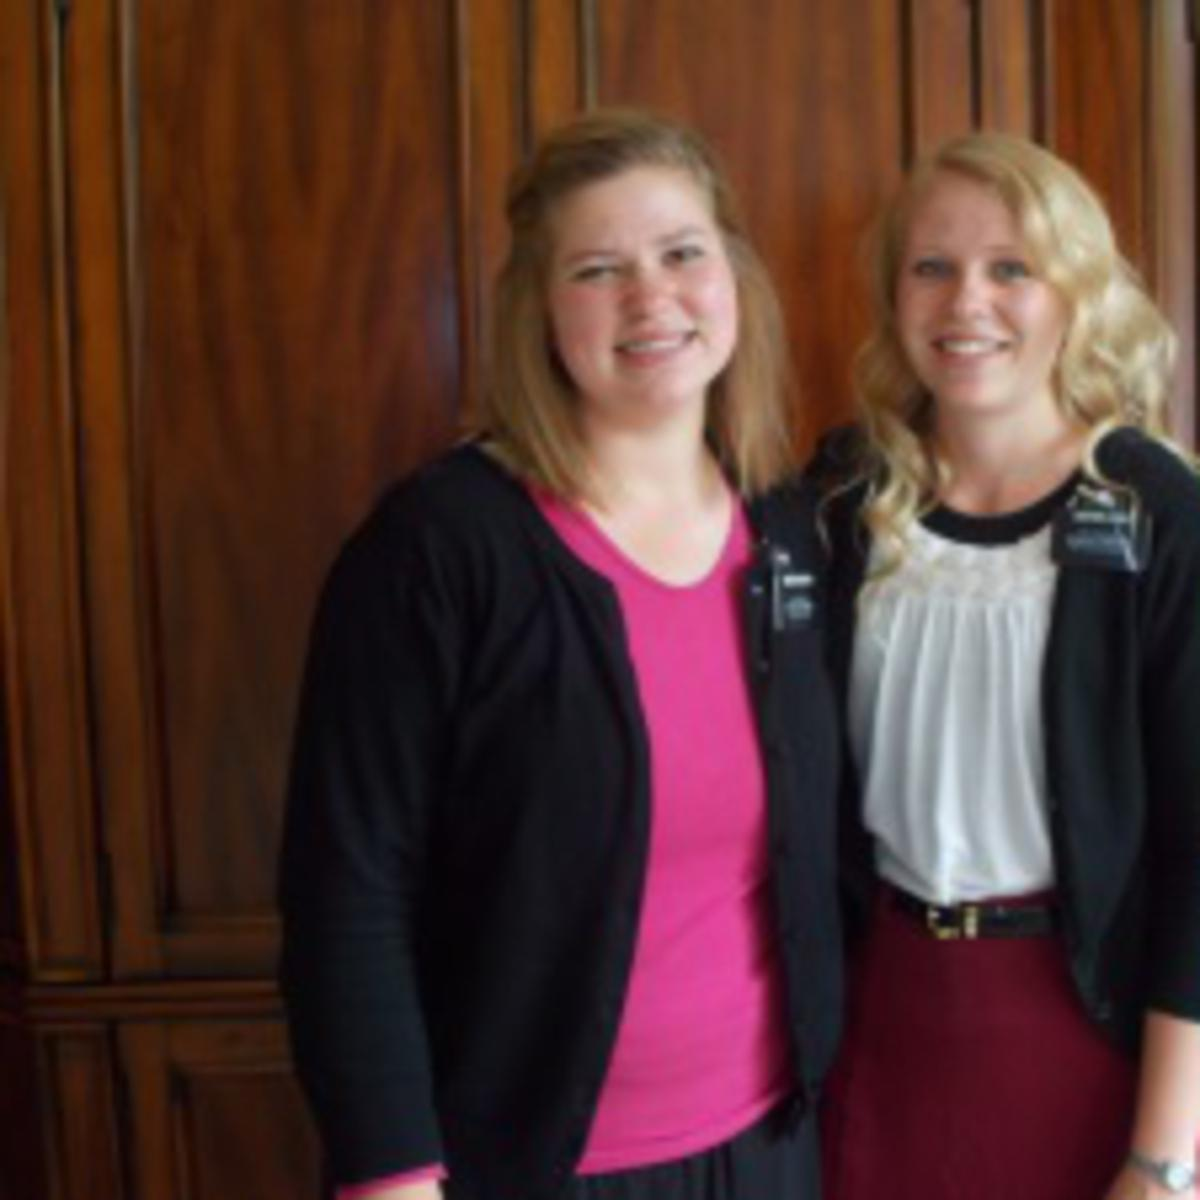 sister missionaries from LDS church